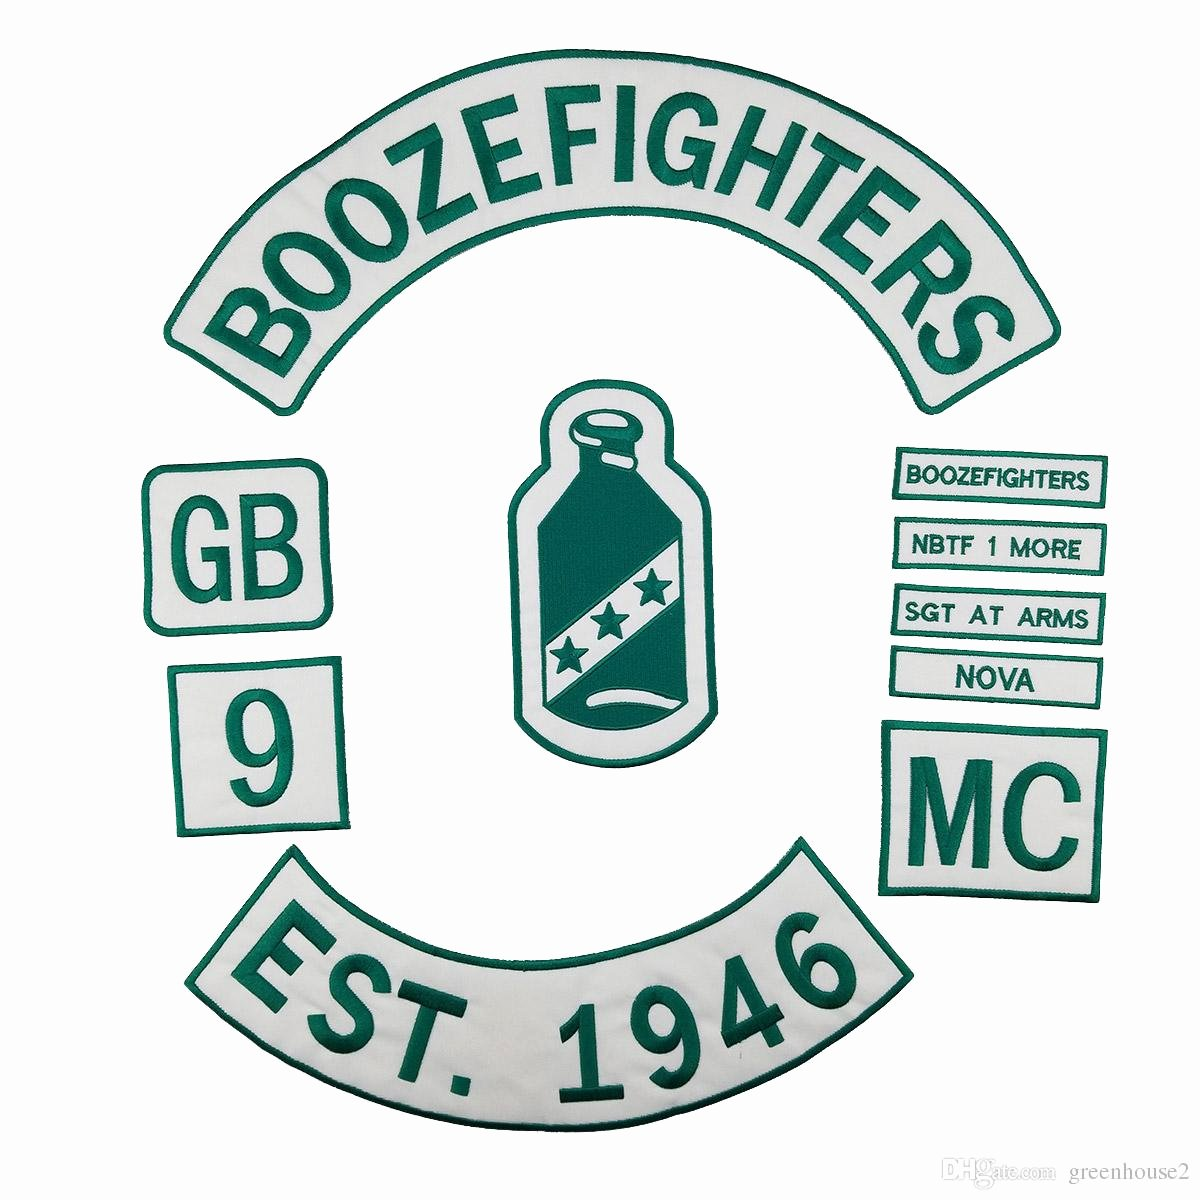 Mc Patch Template Awesome 2019 Boozefighters Est 1946 Motorcycle Club Patch Mc